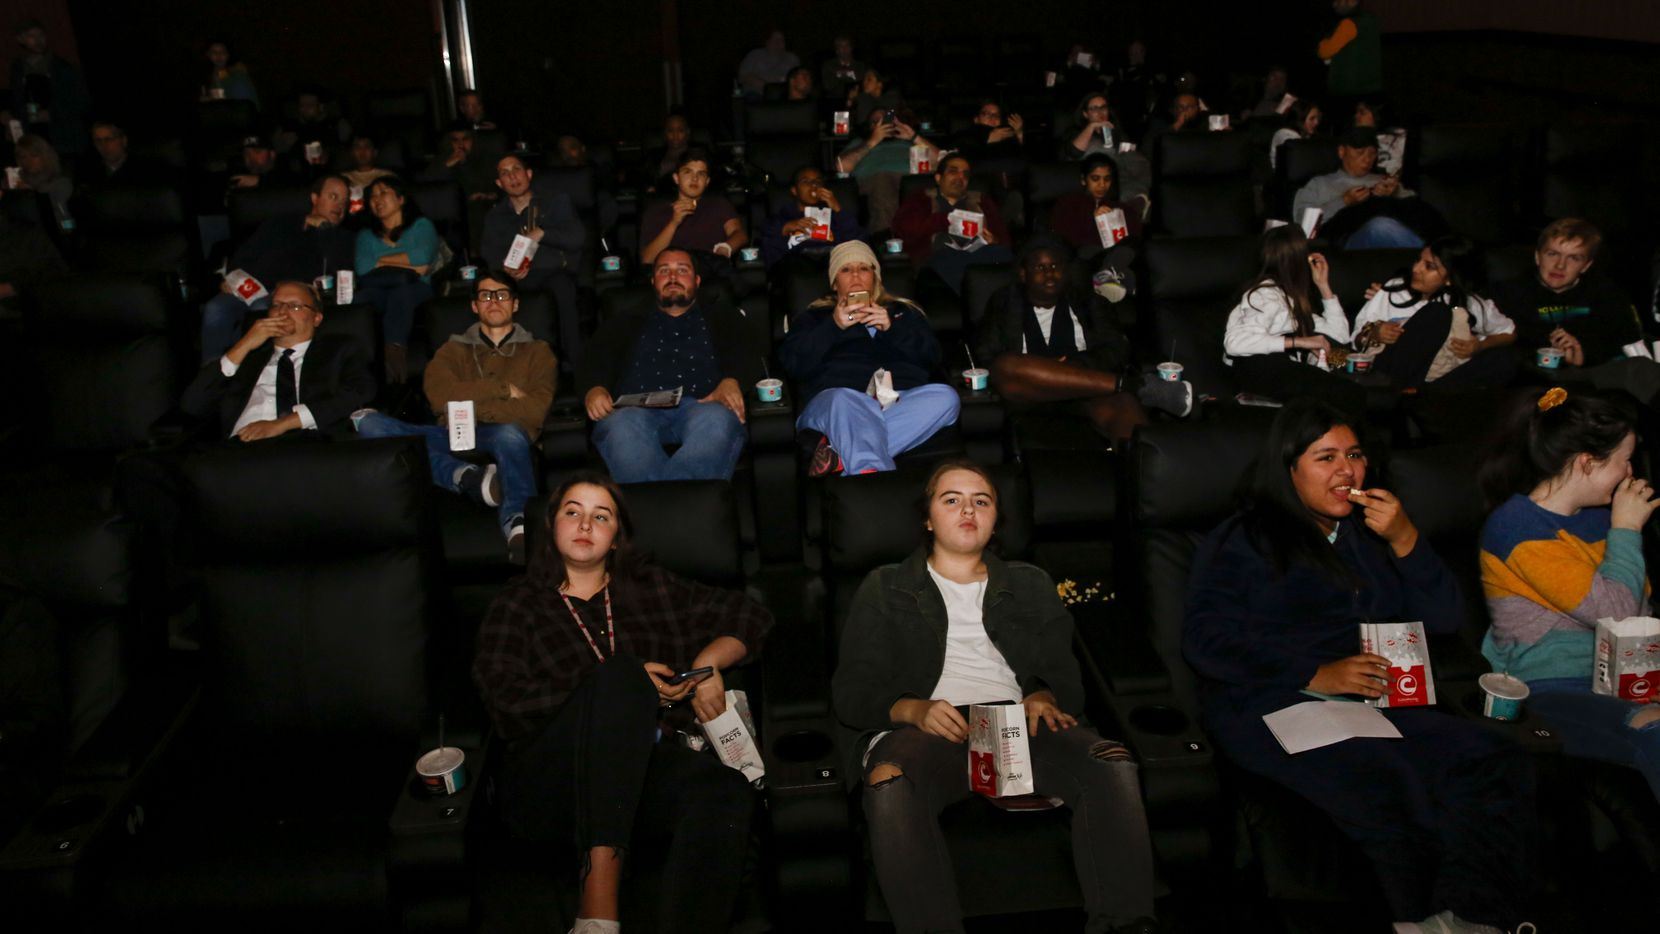 Invited guests got a look at a newly remodeled Cinemark theater at the corner of Coit Rd. and Park in Plano, Texas on Wednesday November 13, 2019.. The one time dollar theater was re-built with reclining chairs and upgraded snack and drink options. (Brian Elledge/The Dallas Morning News)